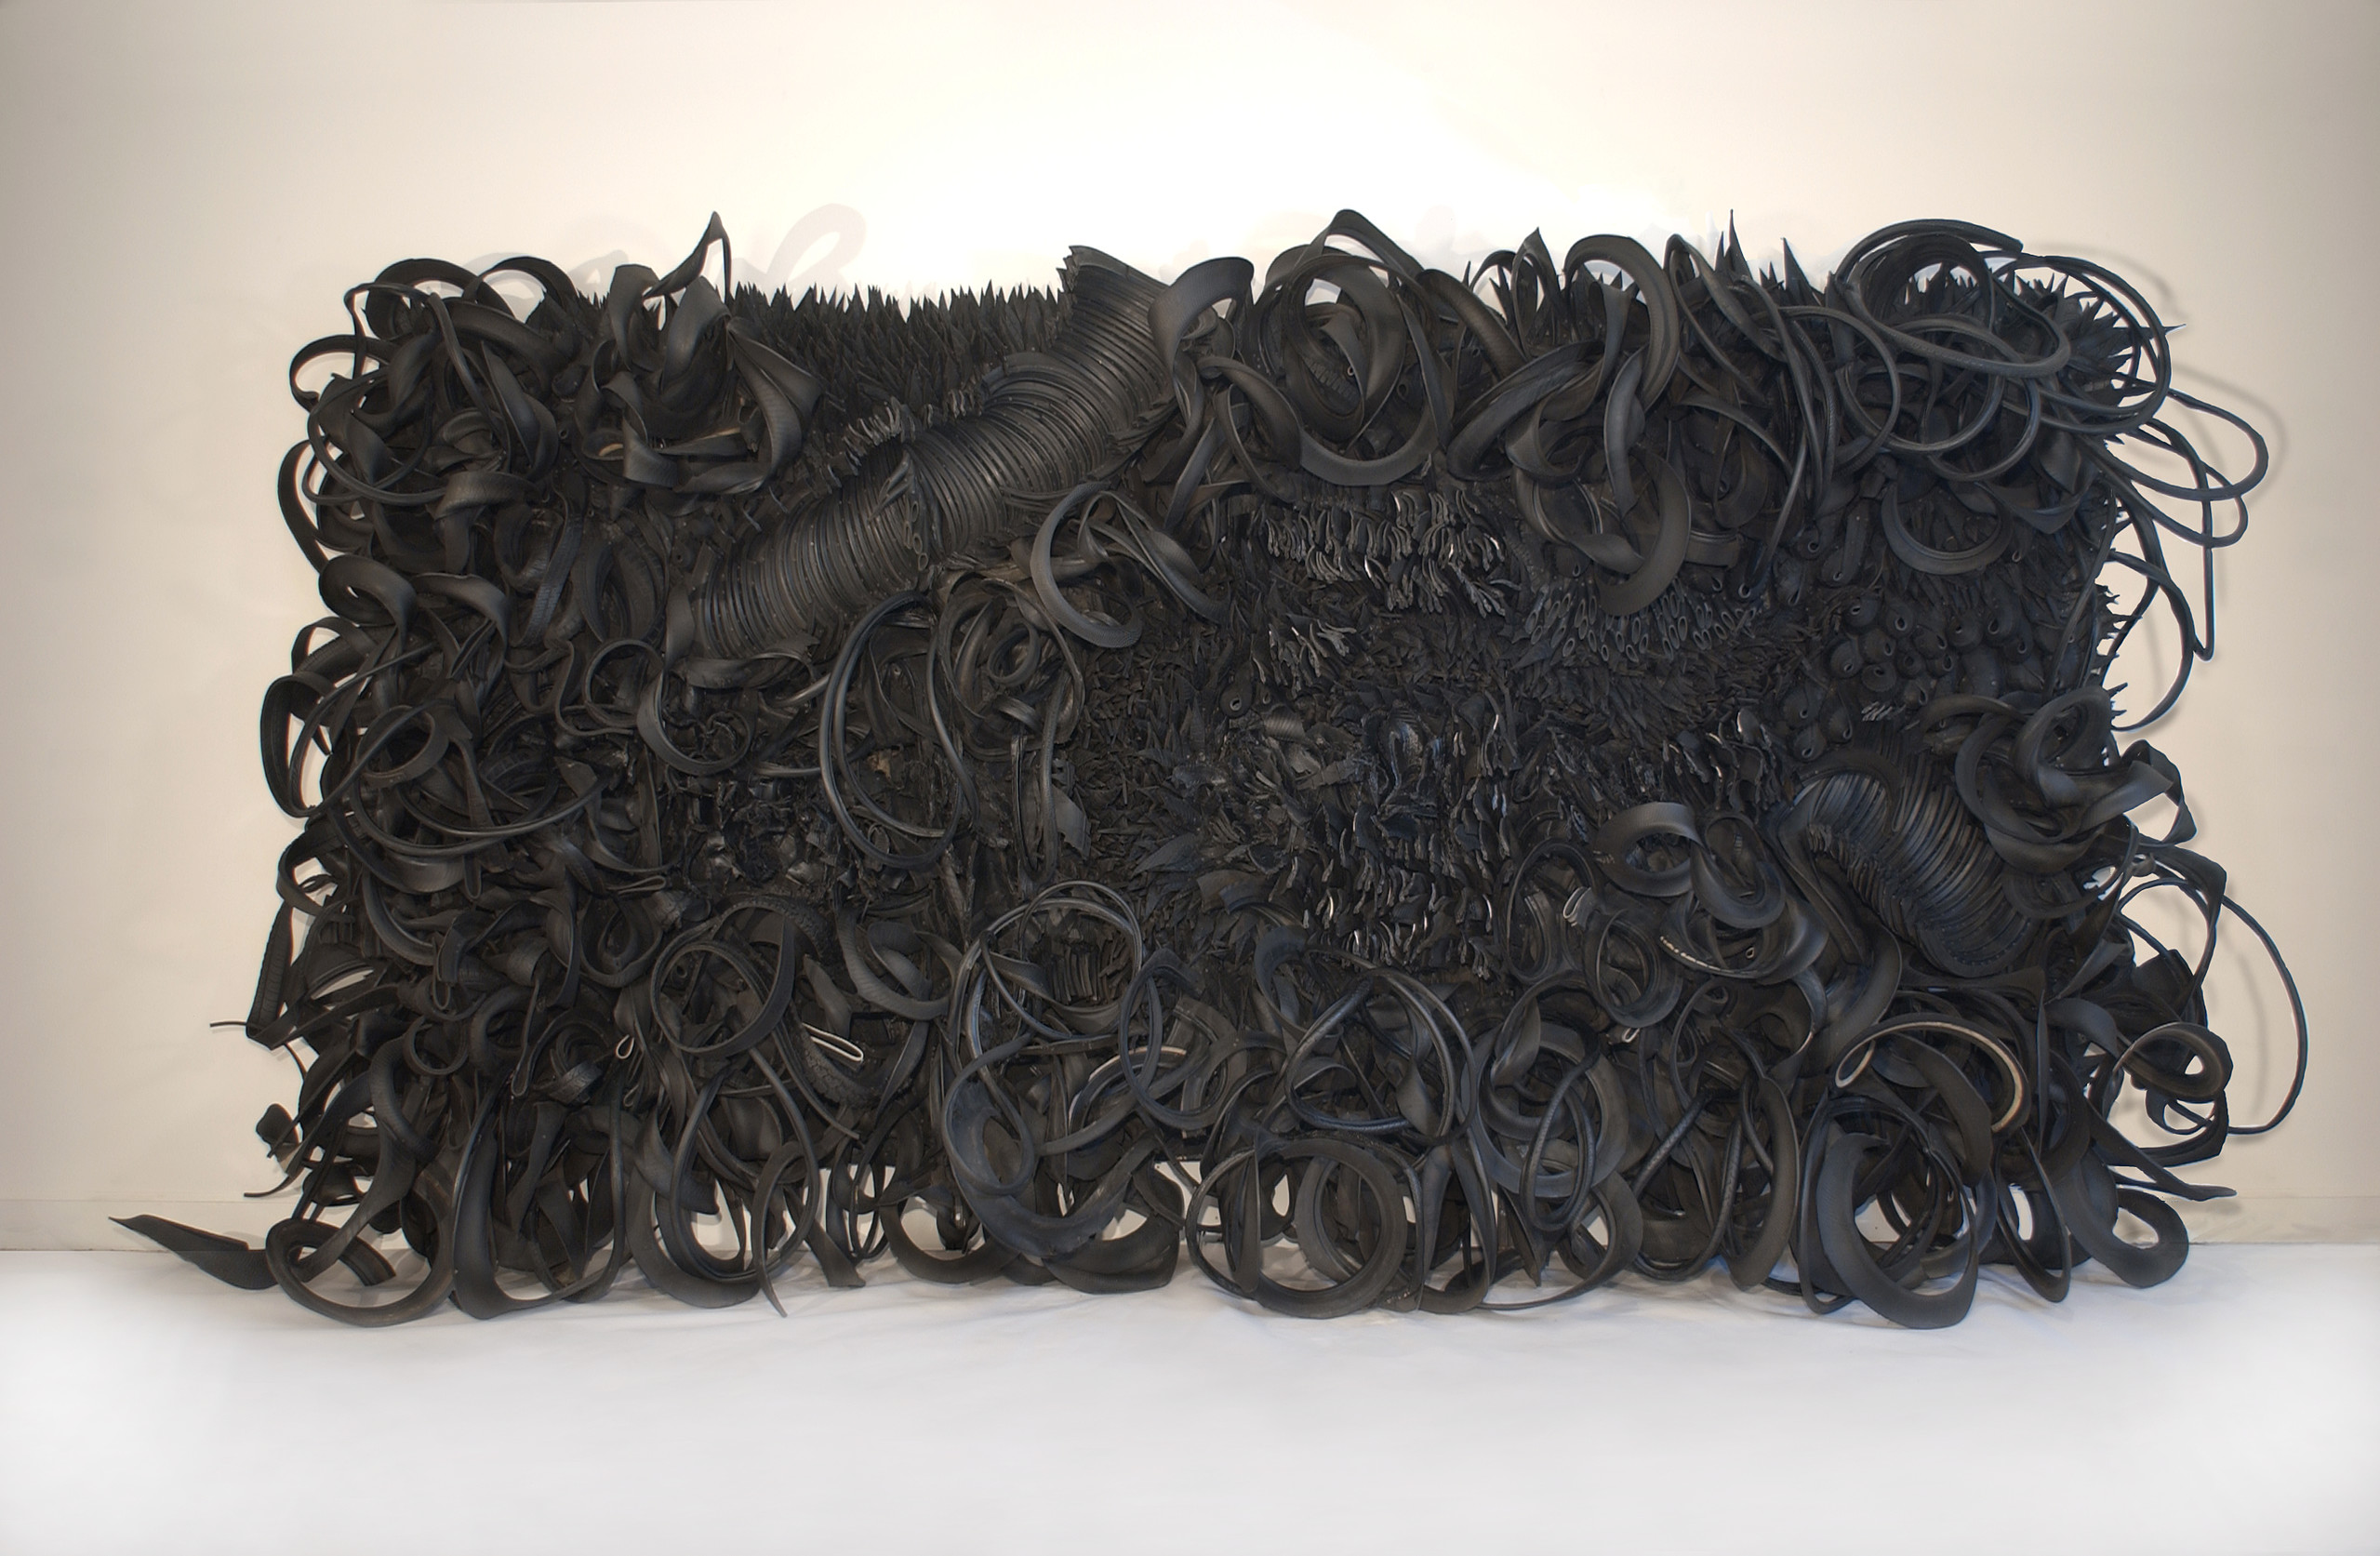 The wall-sized, horizontal sculpture consists of black rubber tires and tubing that has been sliced, stripped, woven, looped, twisted and otherwise manipulated into an expressive and abstract high-relief tableau.